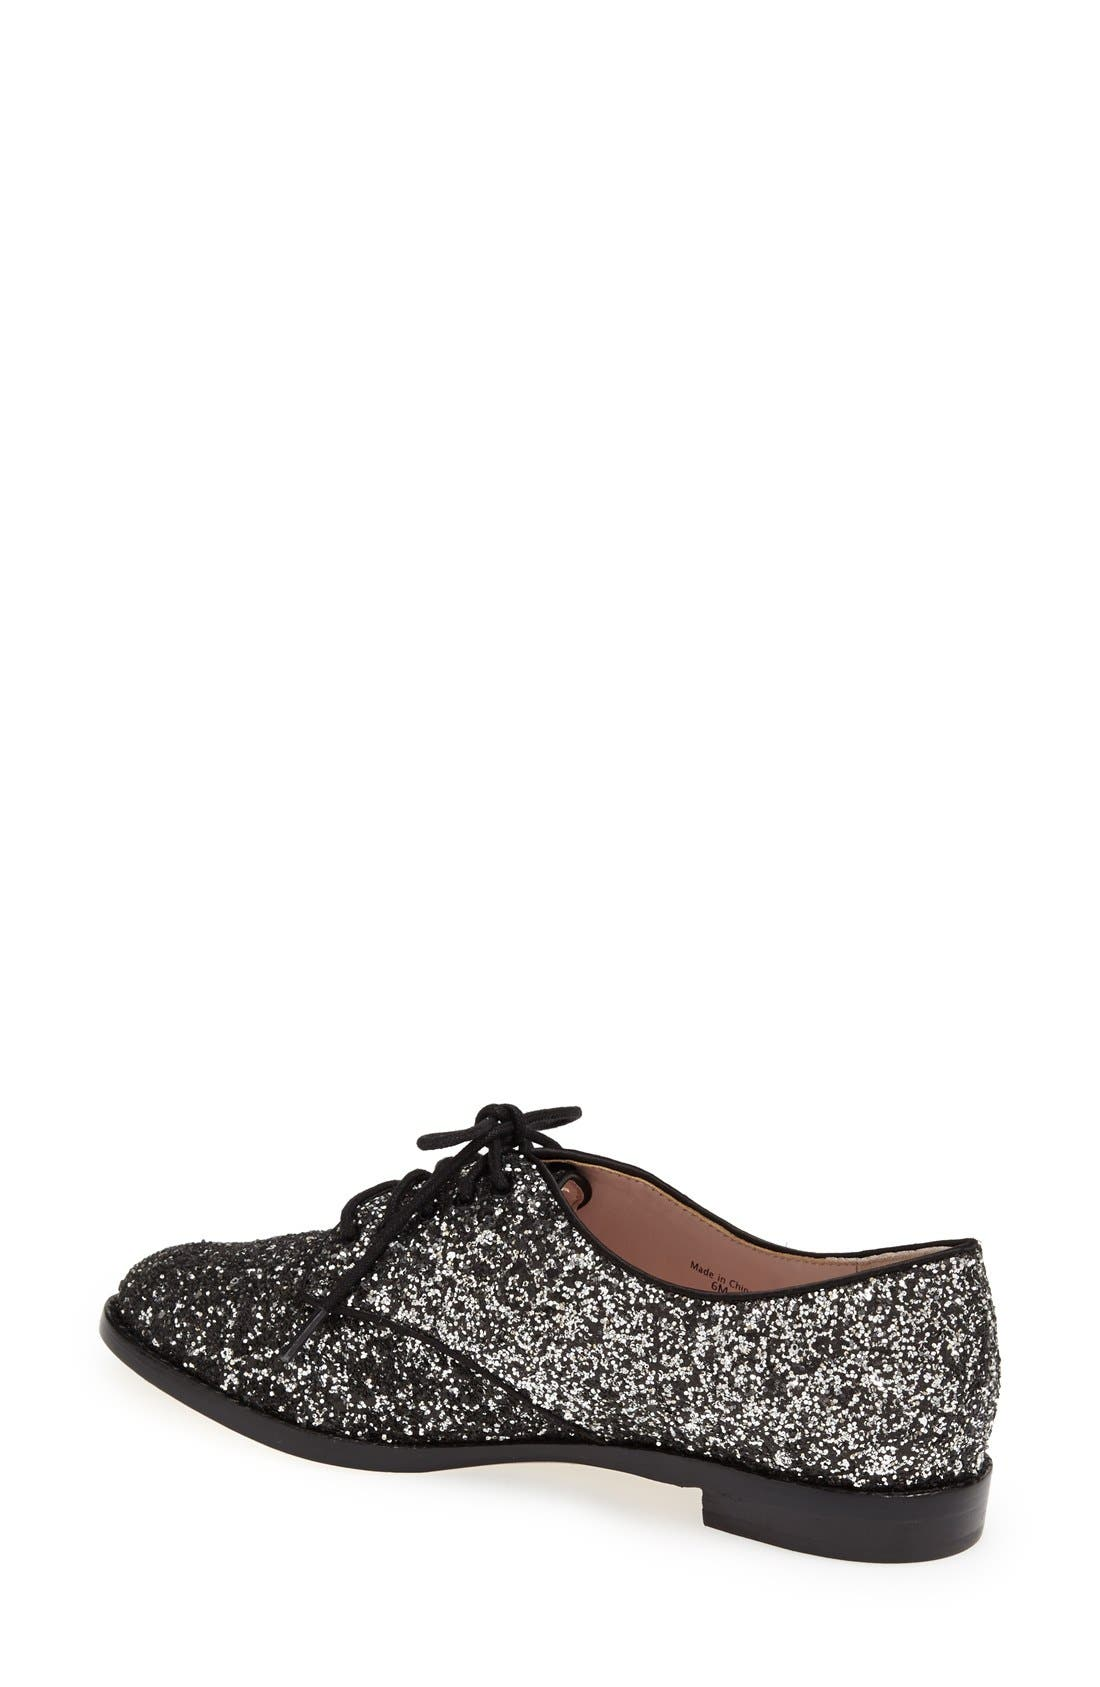 Alternate Image 2  - kate spade new york 'paxton' oxford (Women)